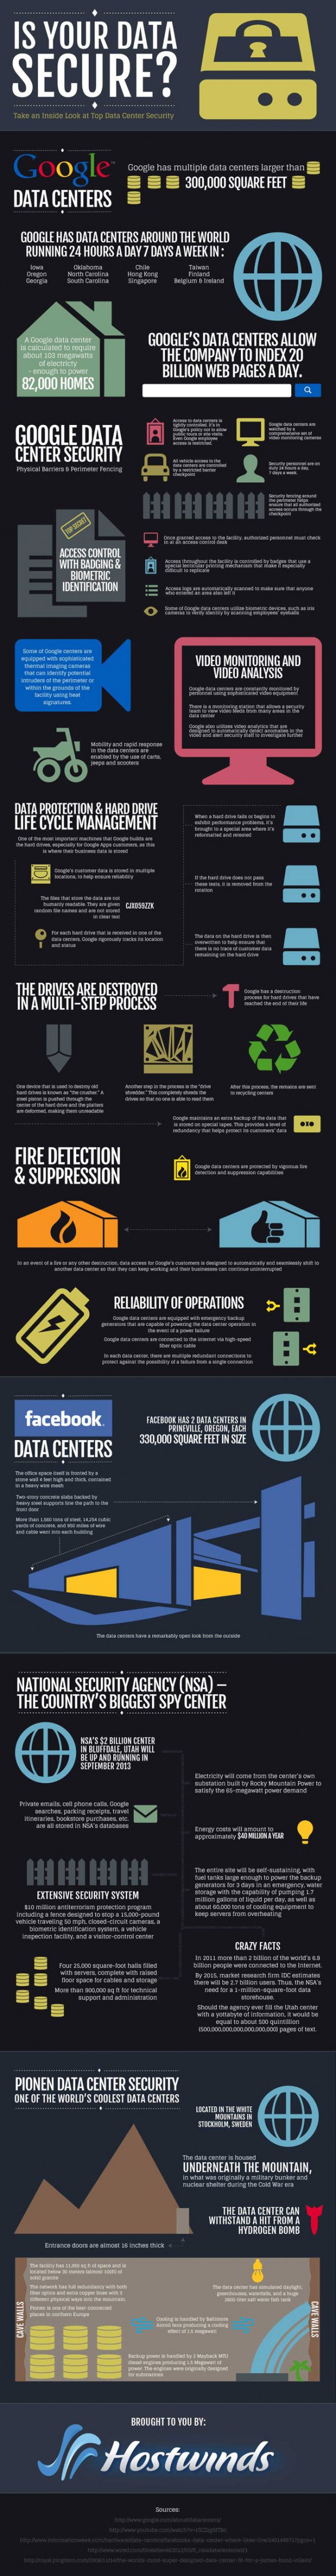 How Secure Is Your Personal Data in Light of PRISM?